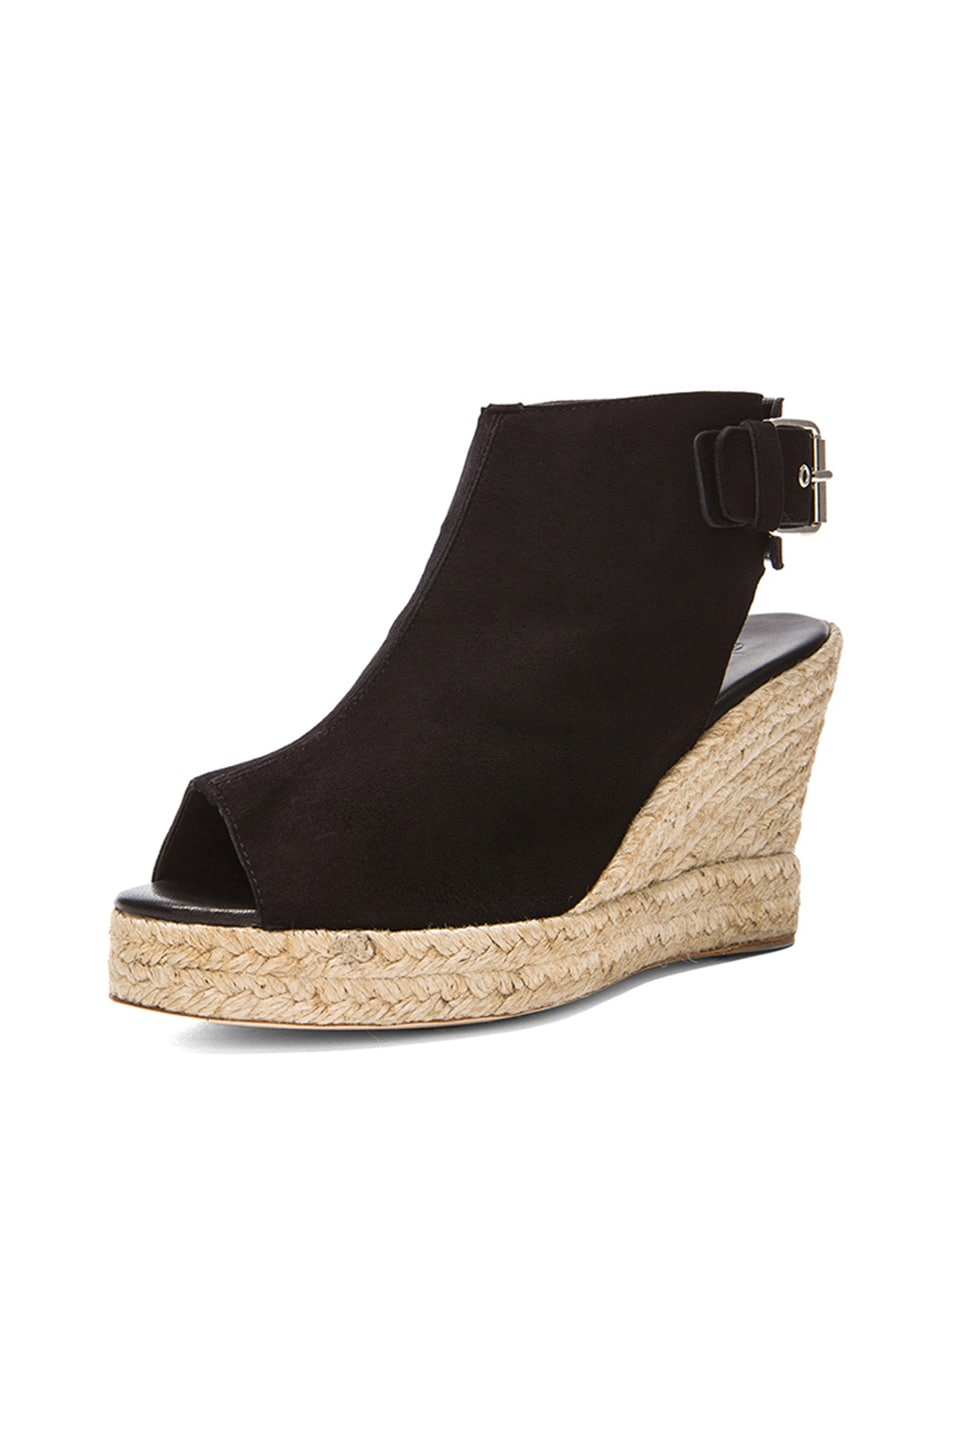 Image 2 of elysewalker los angeles Lesley Suede Wedges in Black